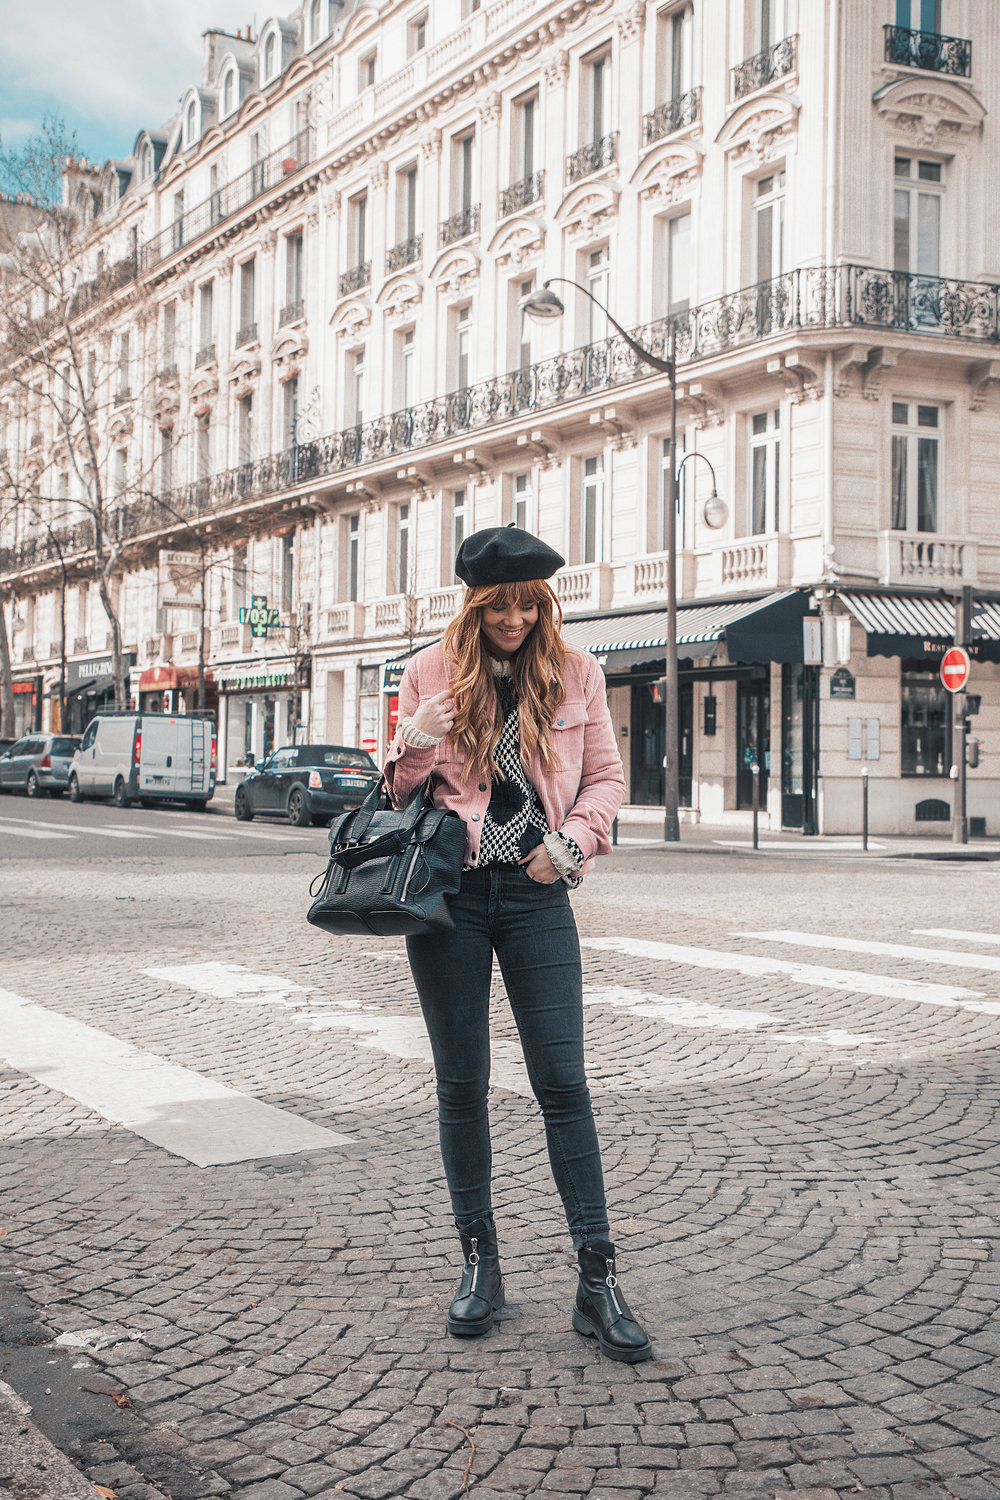 paris-winter-street-style-pink-jacket_1.jpg